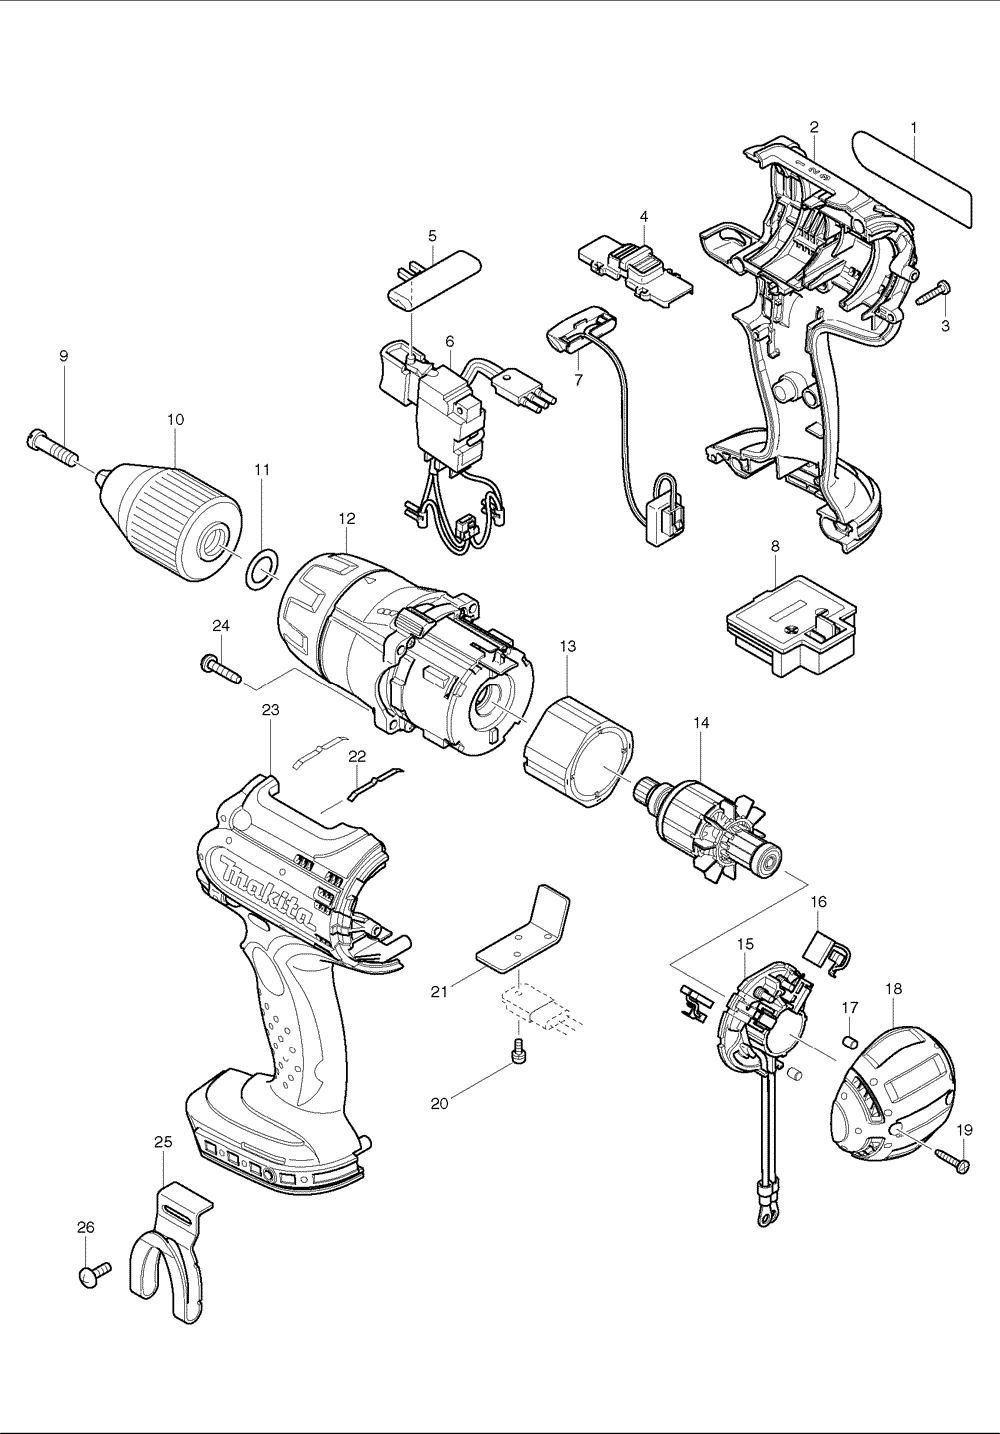 the 2007 2012 outlook for cordless battery powered driver drills in the united states